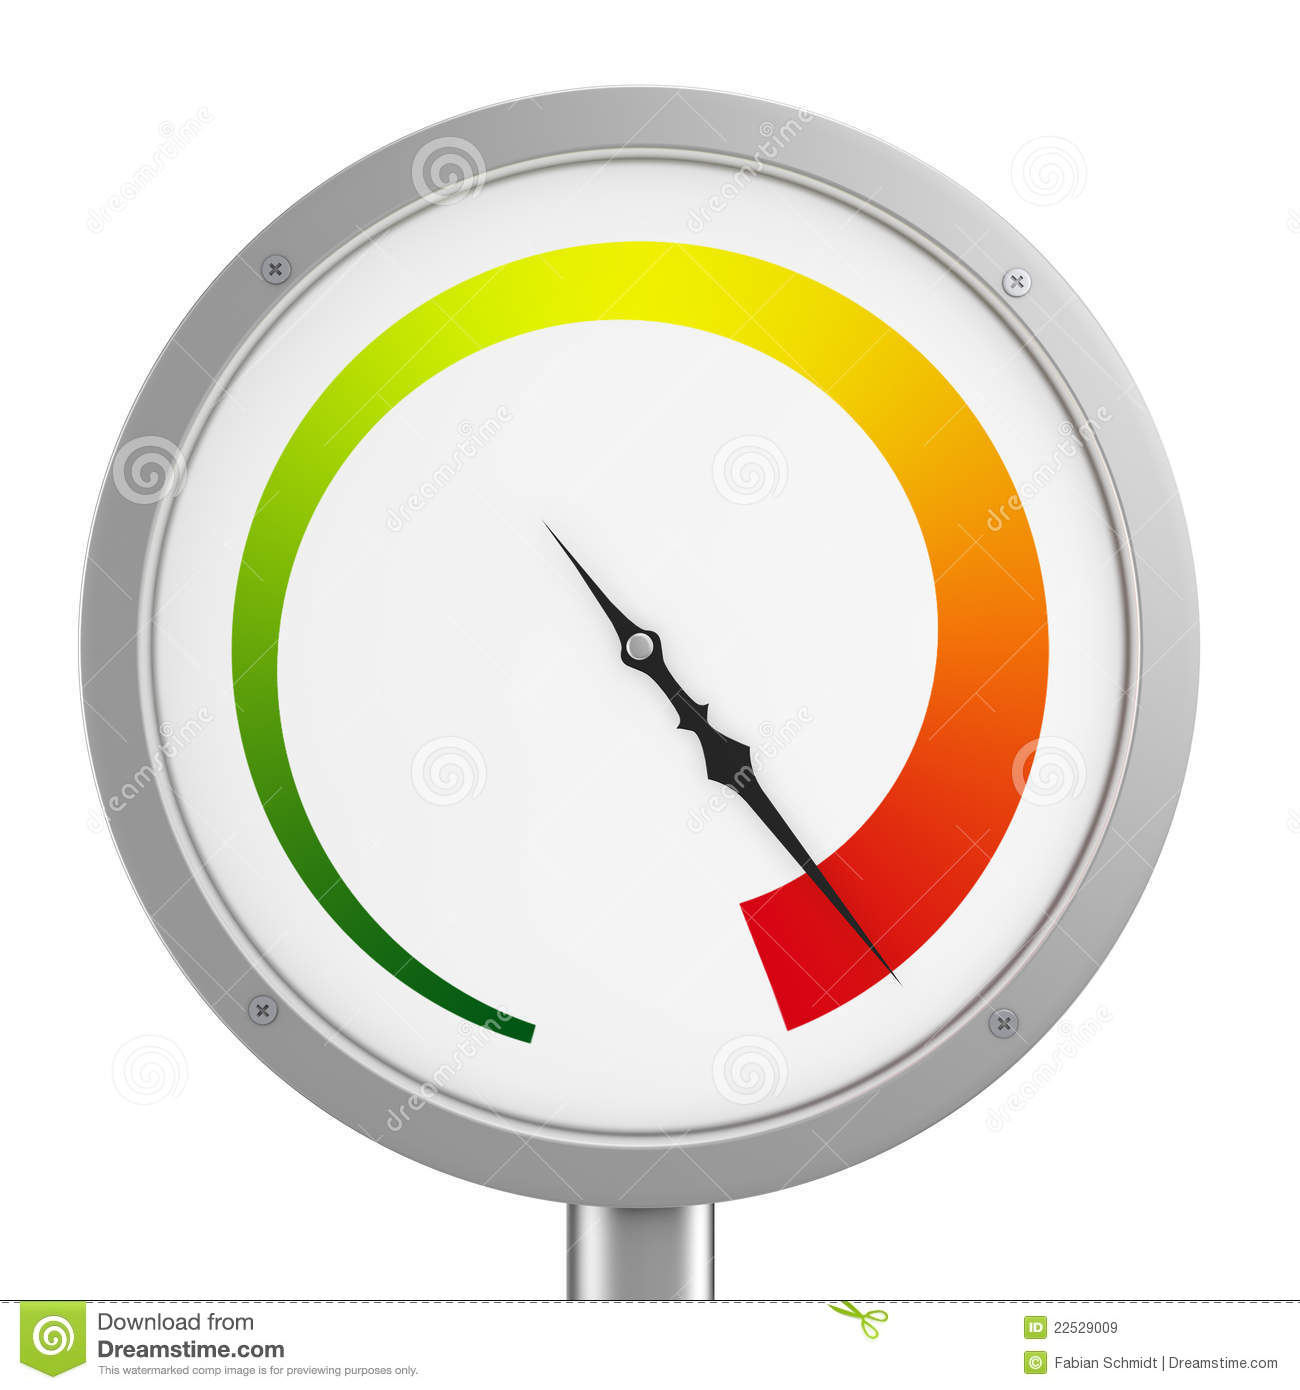 Gauge high pressure clipart.